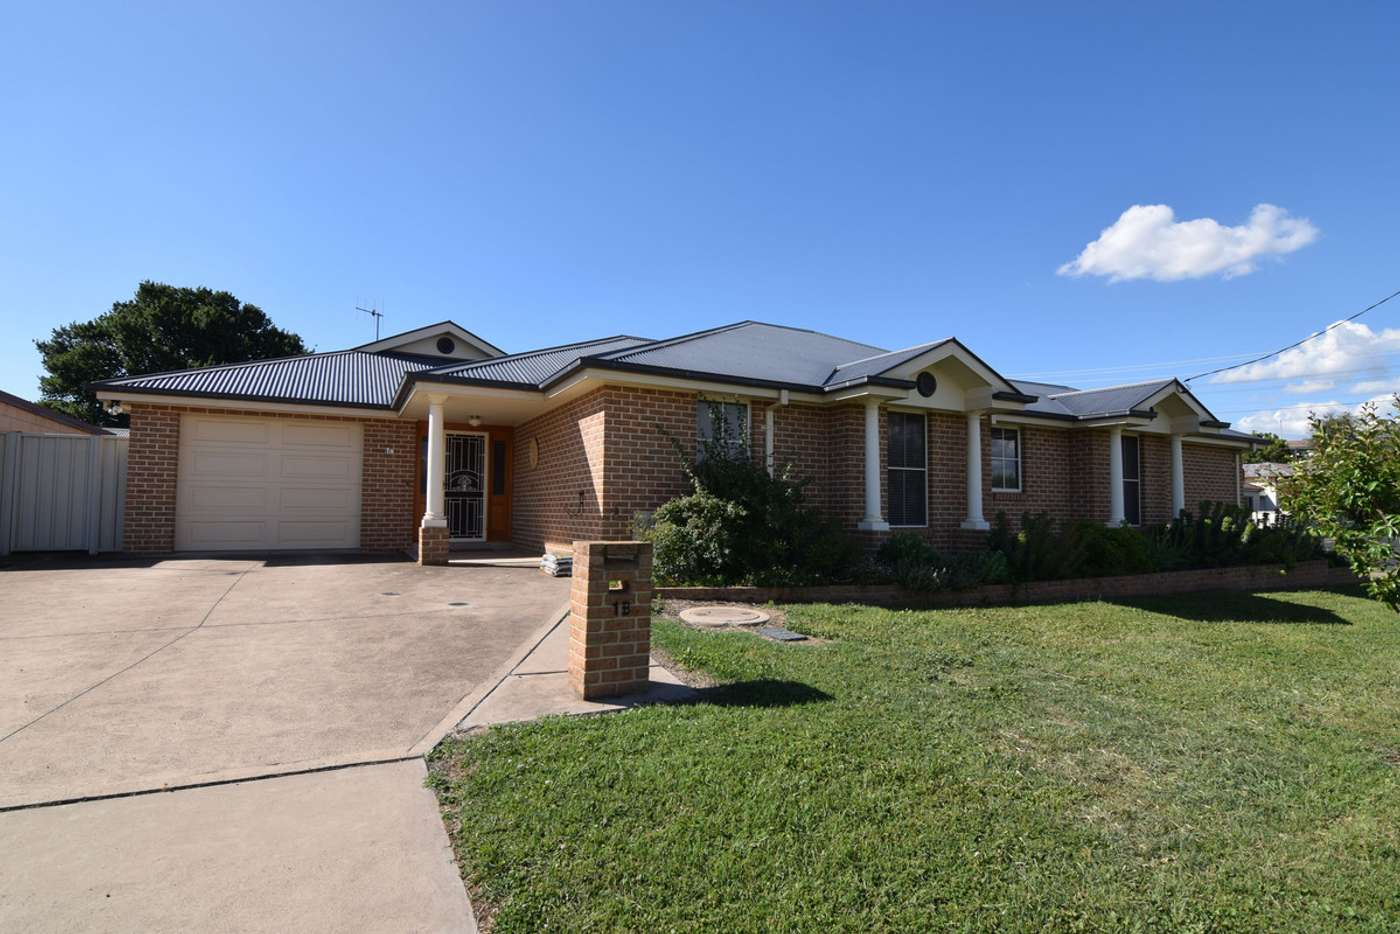 Main view of Homely house listing, 1b Gladstone Street, Bathurst NSW 2795